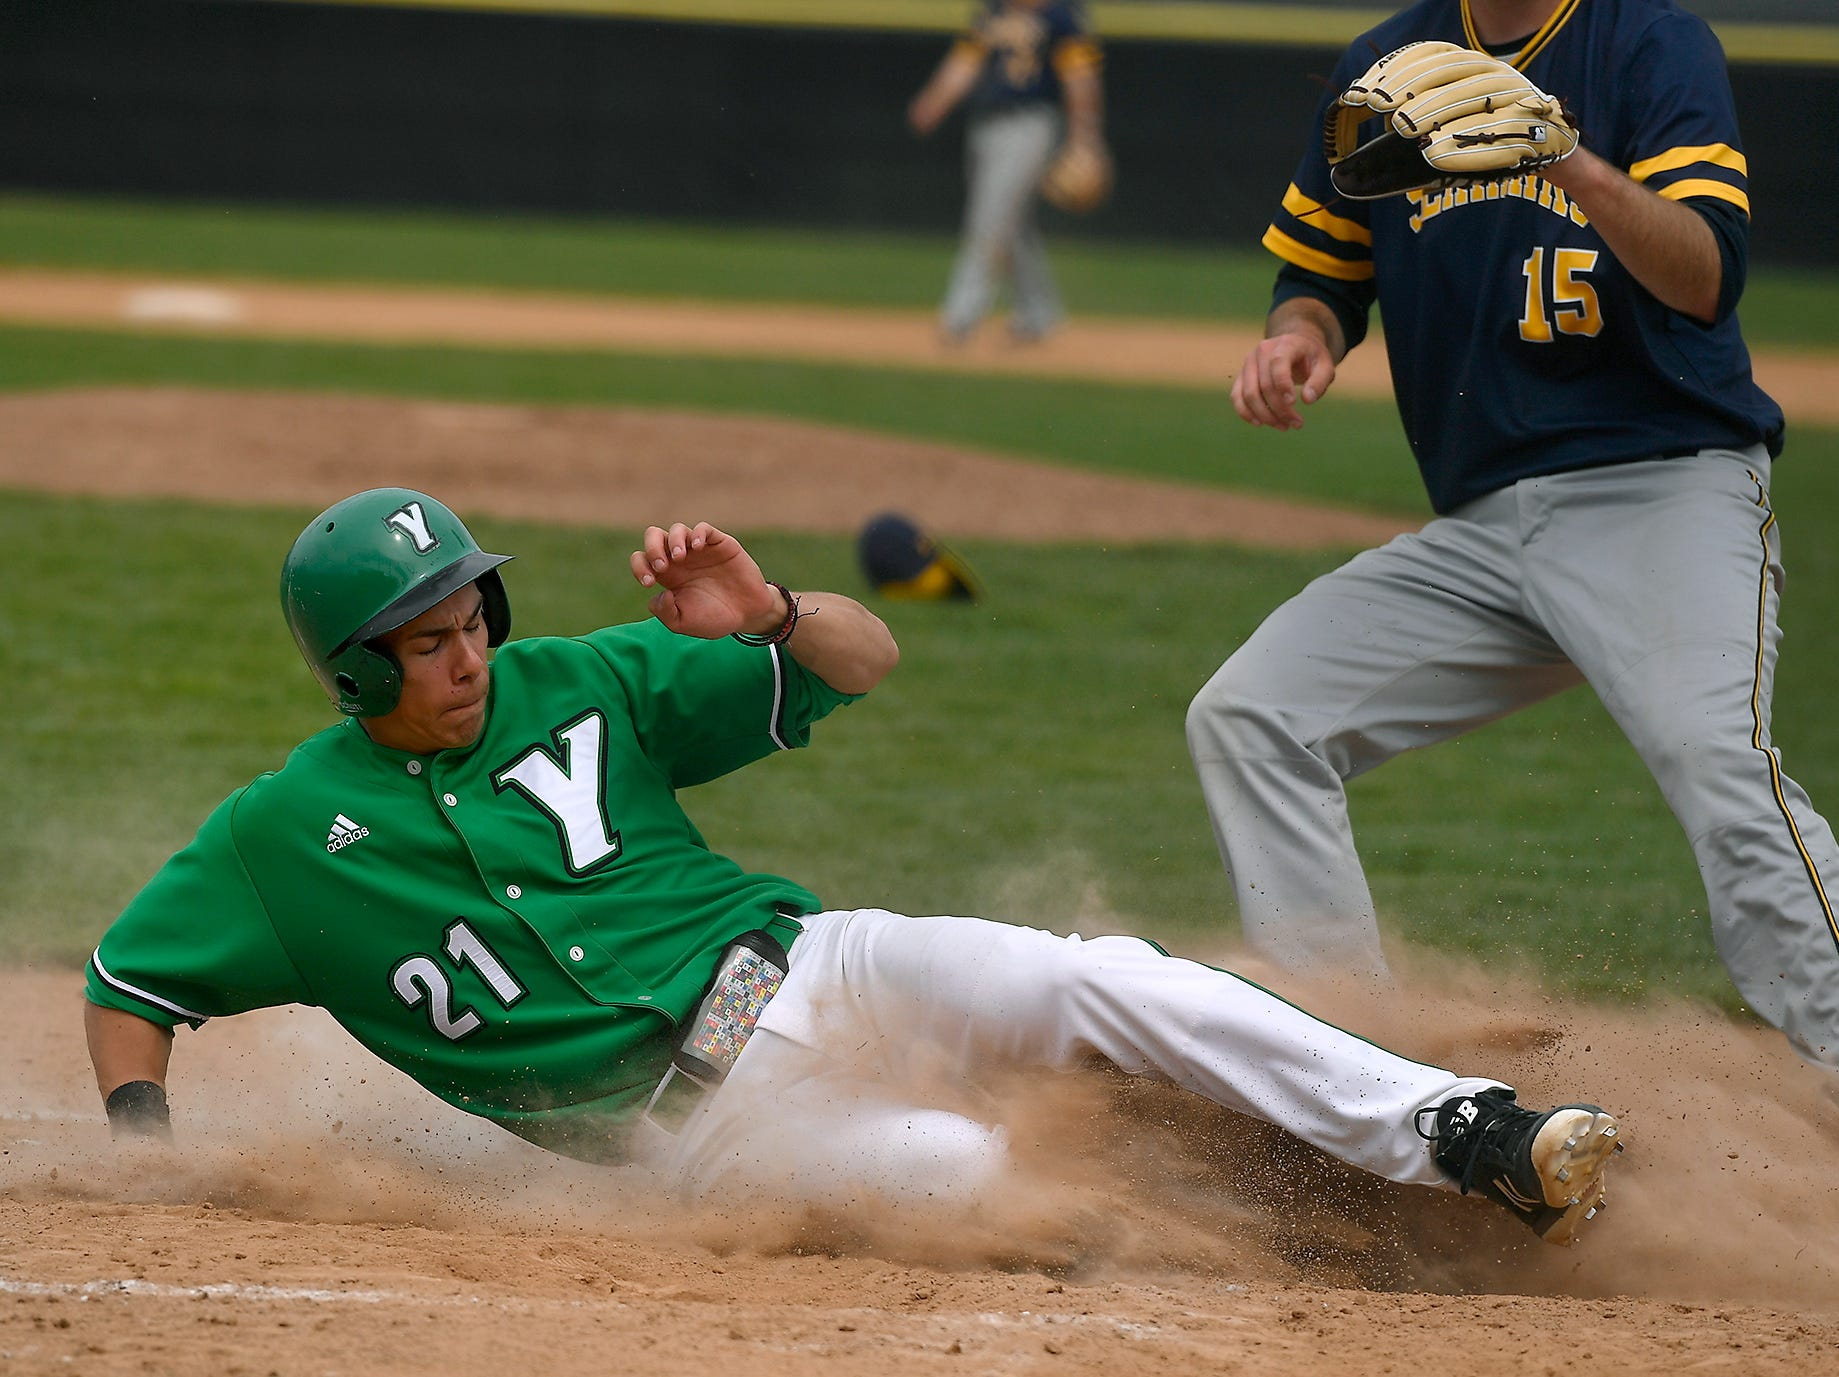 Jimmy Wiegers of York College slides into home, scoring against St. Mary's on a passed ball, Sunday, April 7, 2019.John A. Pavoncello photo